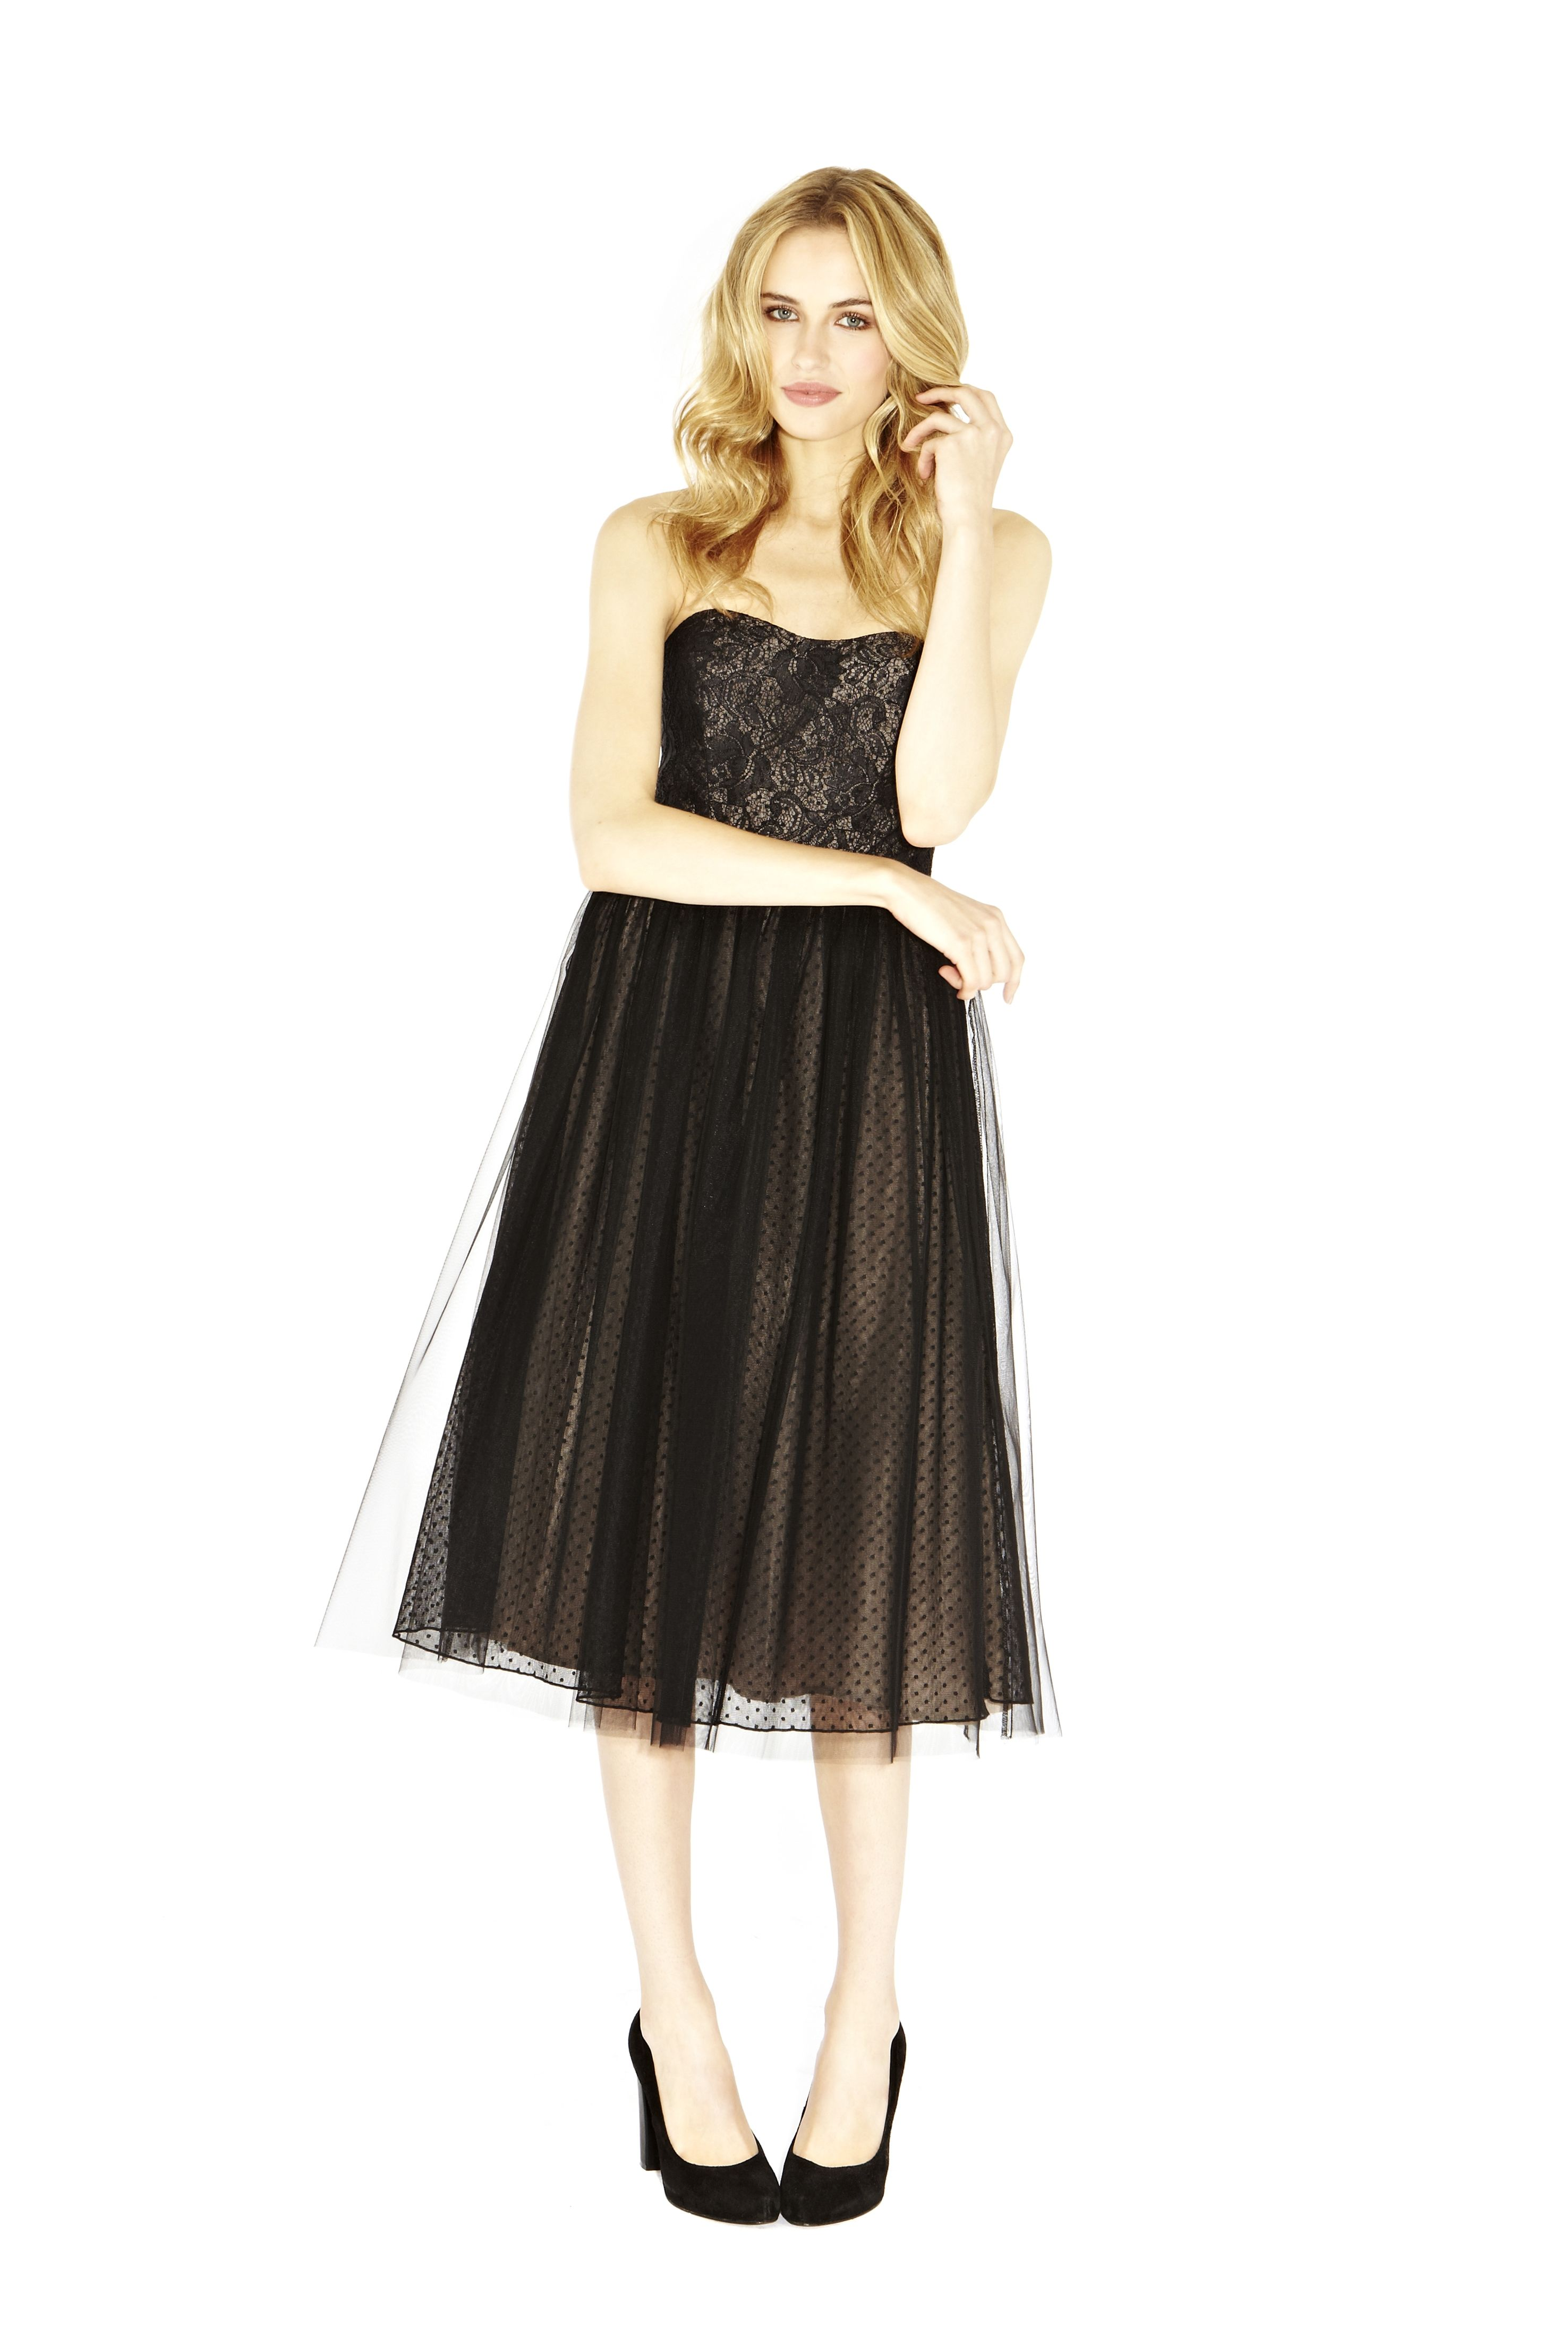 Just Skirts And Dresses Inspiration: We Heart This Oasis Lace Prom Dress Inspired By Inspired